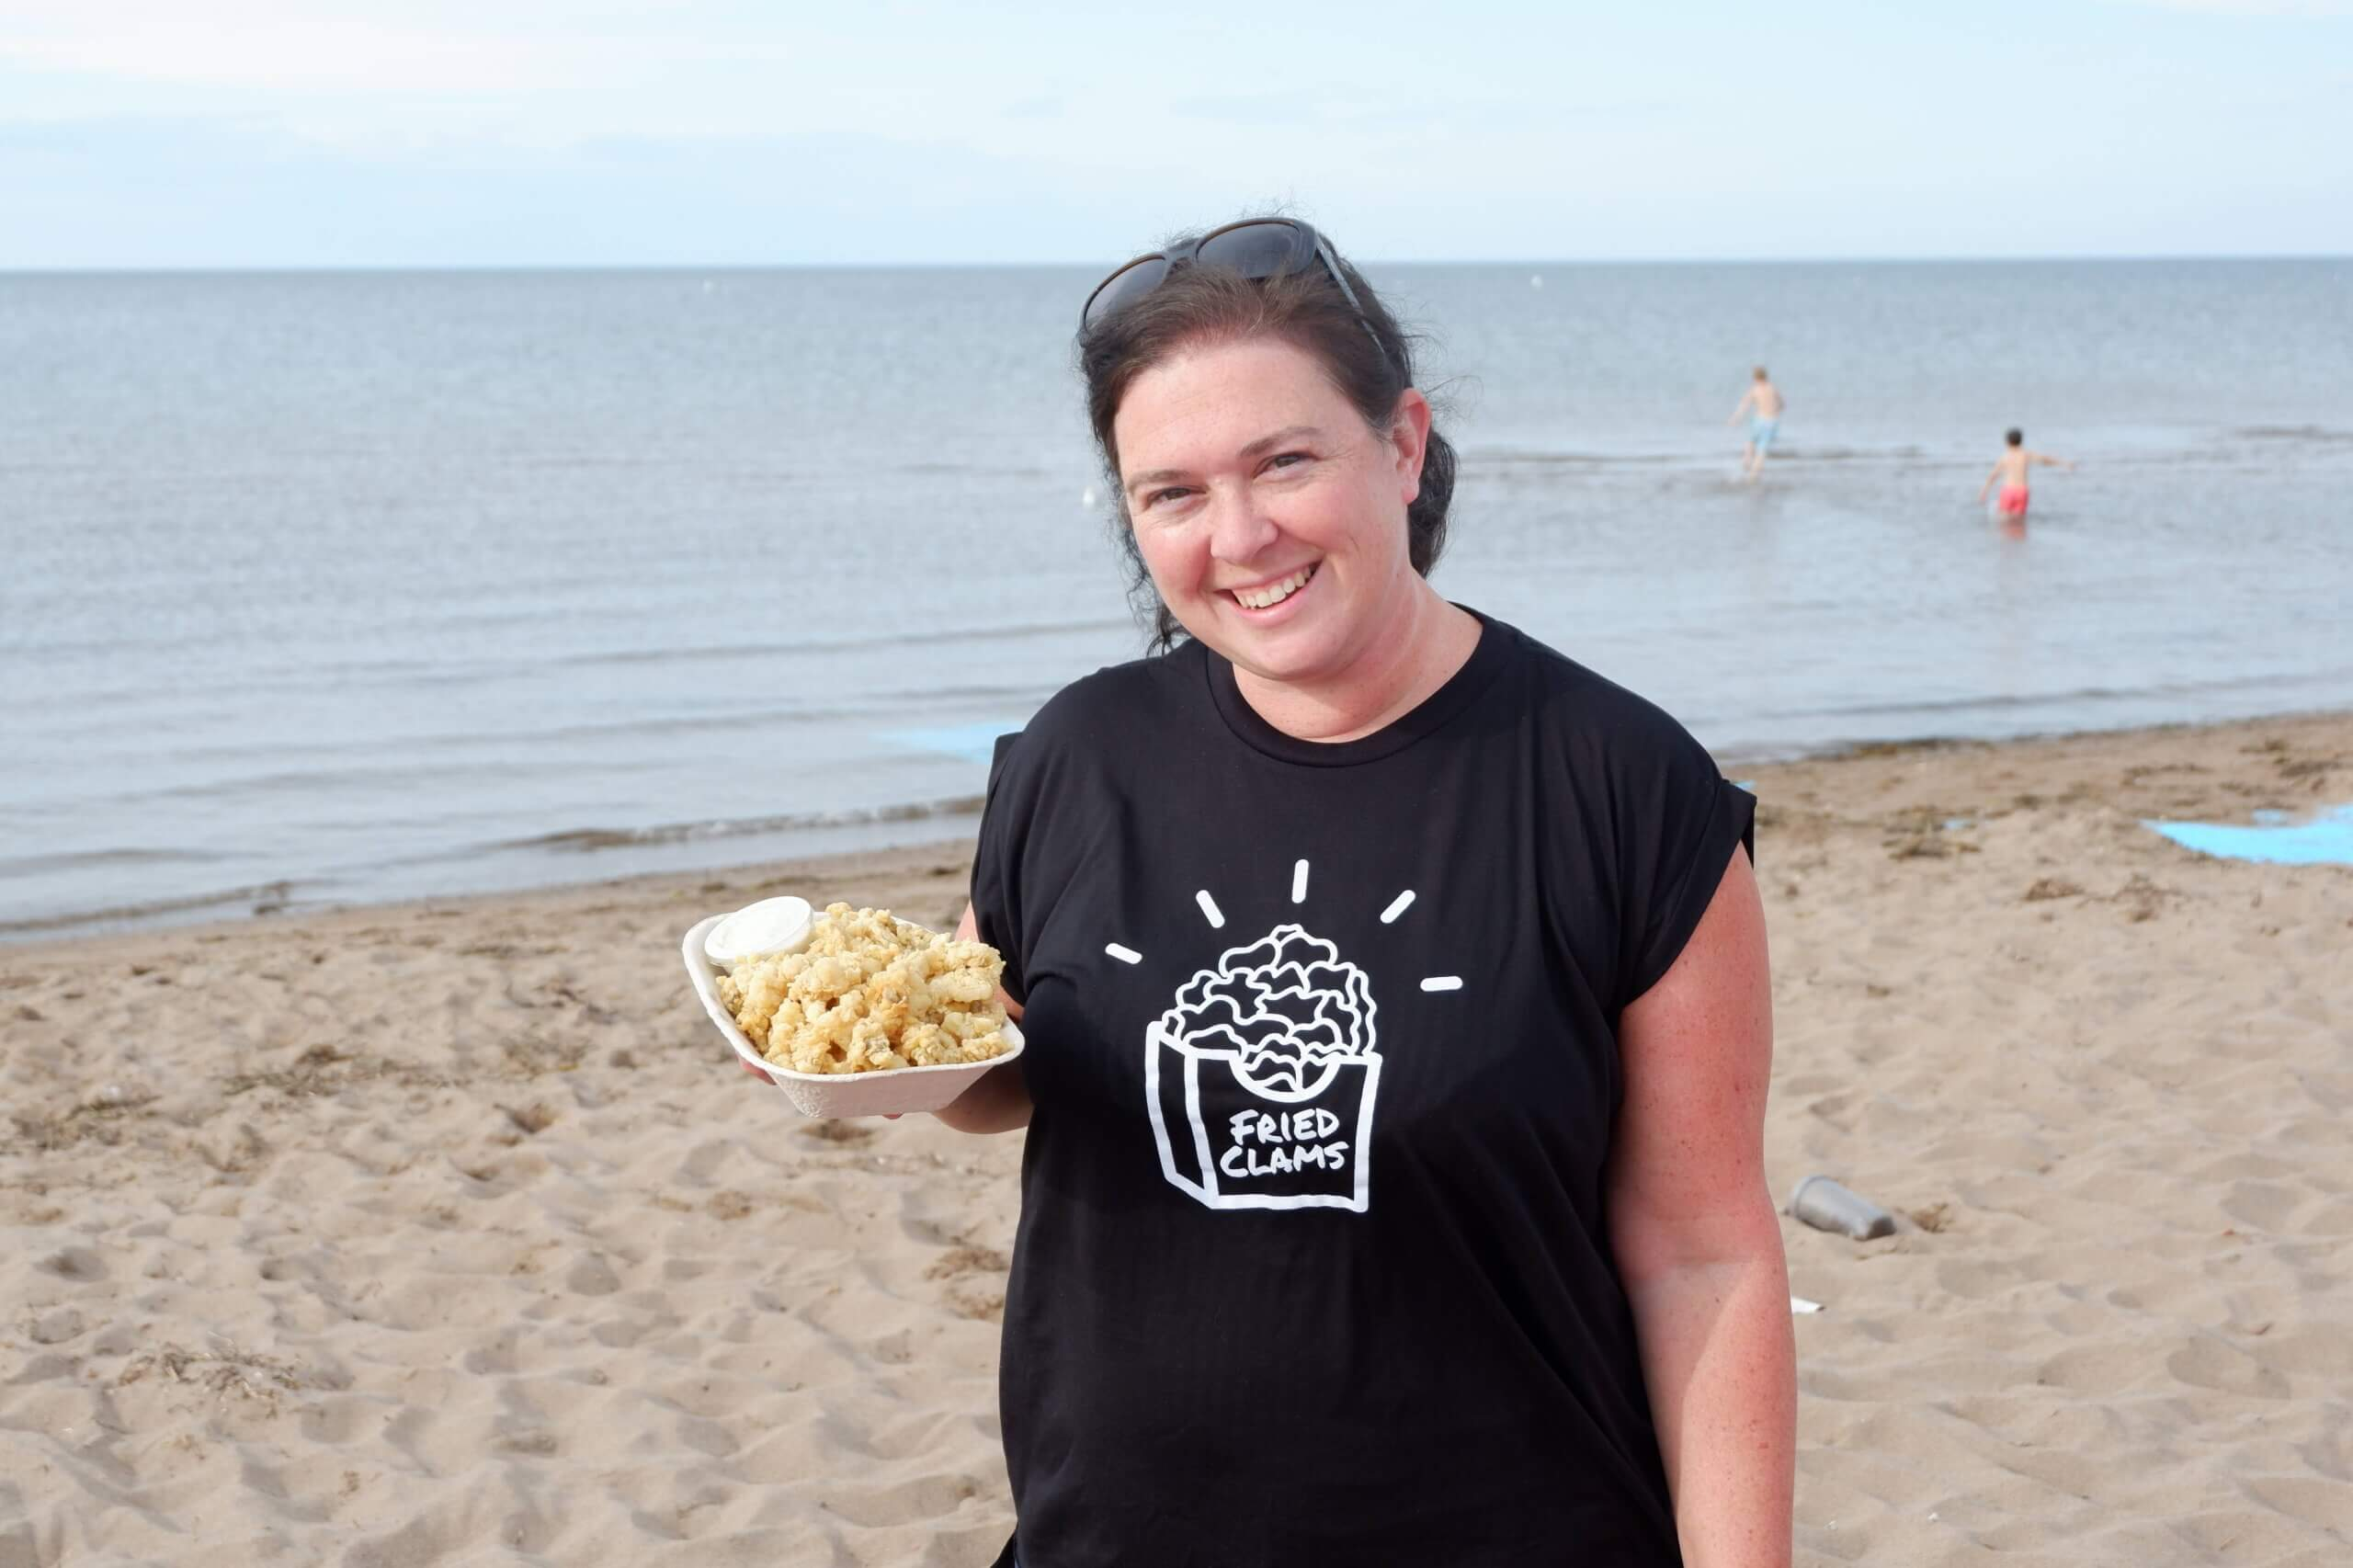 pickle planet's jenna morton enjoying fried clams in her fried clams t-shirt on aboiteau beach in new brunswick